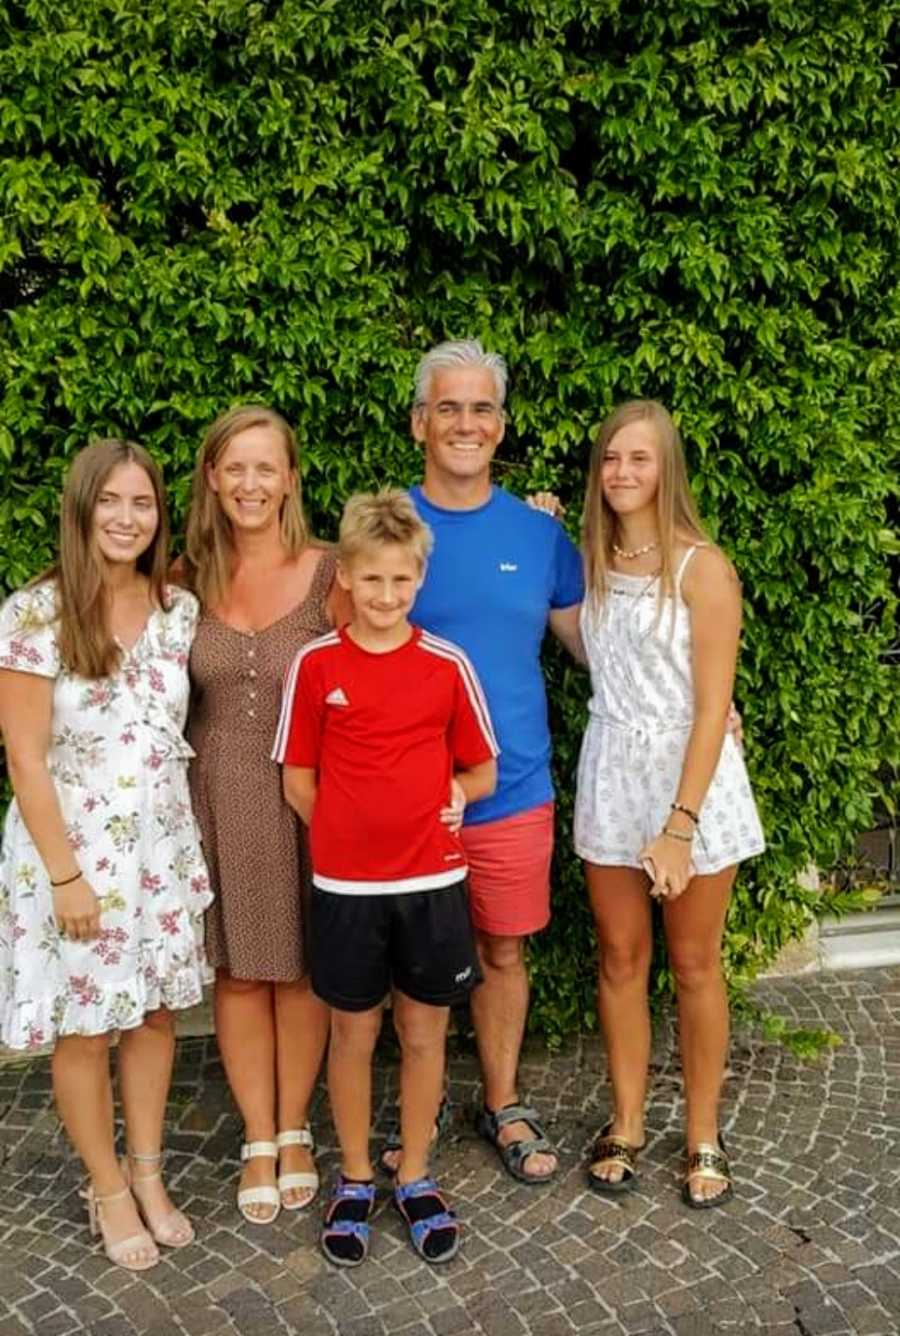 Family of five standing in front of hedge and smiling